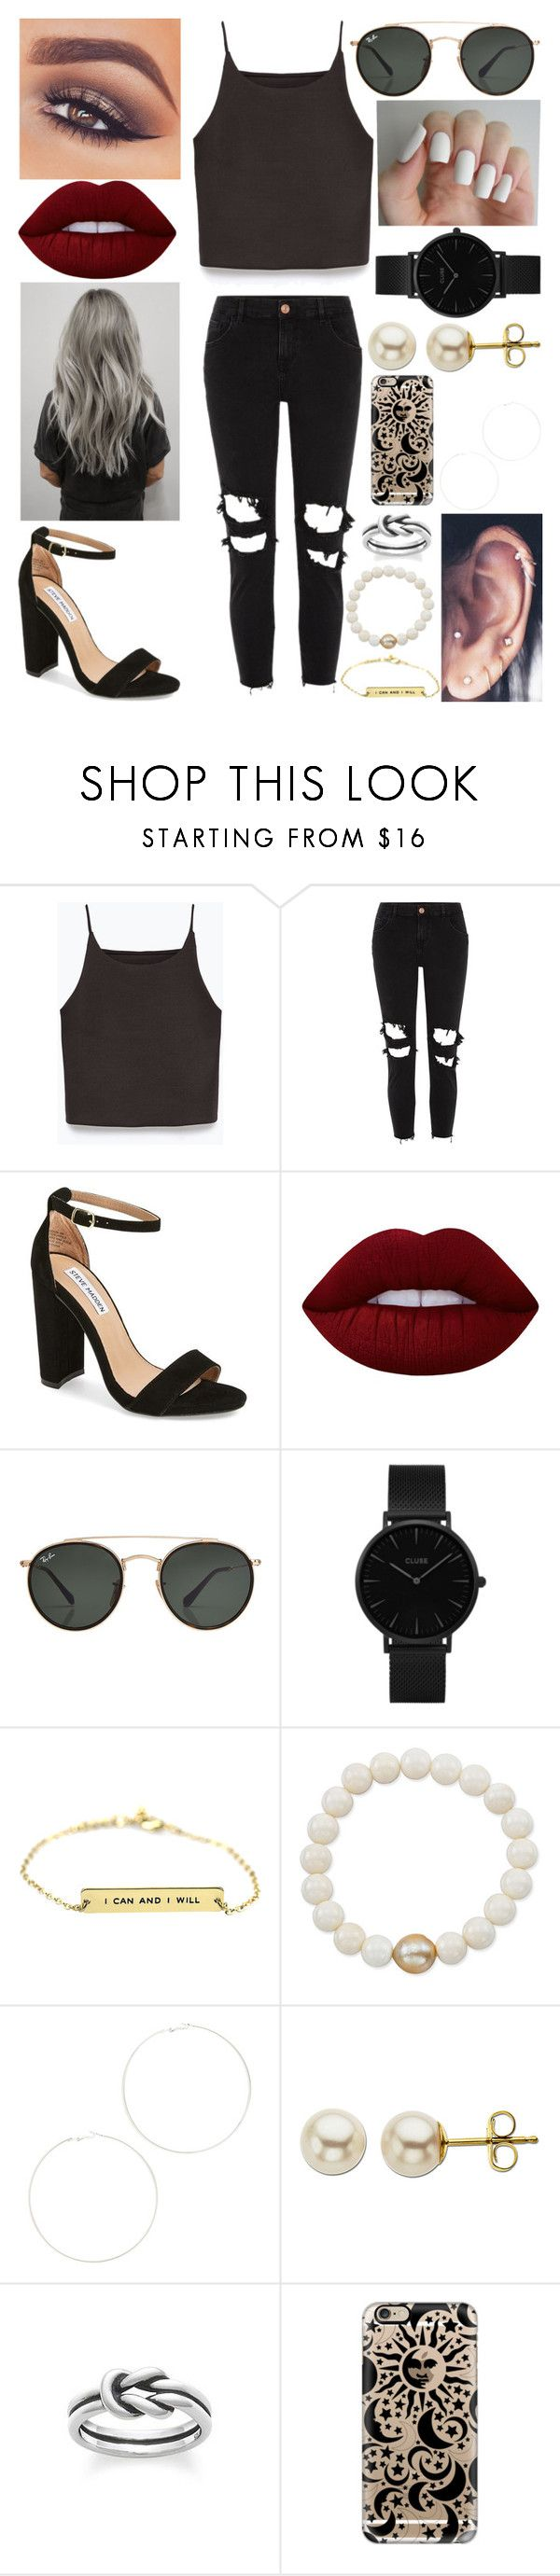 """""""Somewhere in all the confusion💭"""" by xo-arissa-xo ❤ liked on Polyvore featuring Zara, River Island, Steve Madden, Mary Kay, Lime Crime, Ray-Ban, CLUSE, Anne Sisteron, Kenneth Jay Lane and Lord & Taylor"""